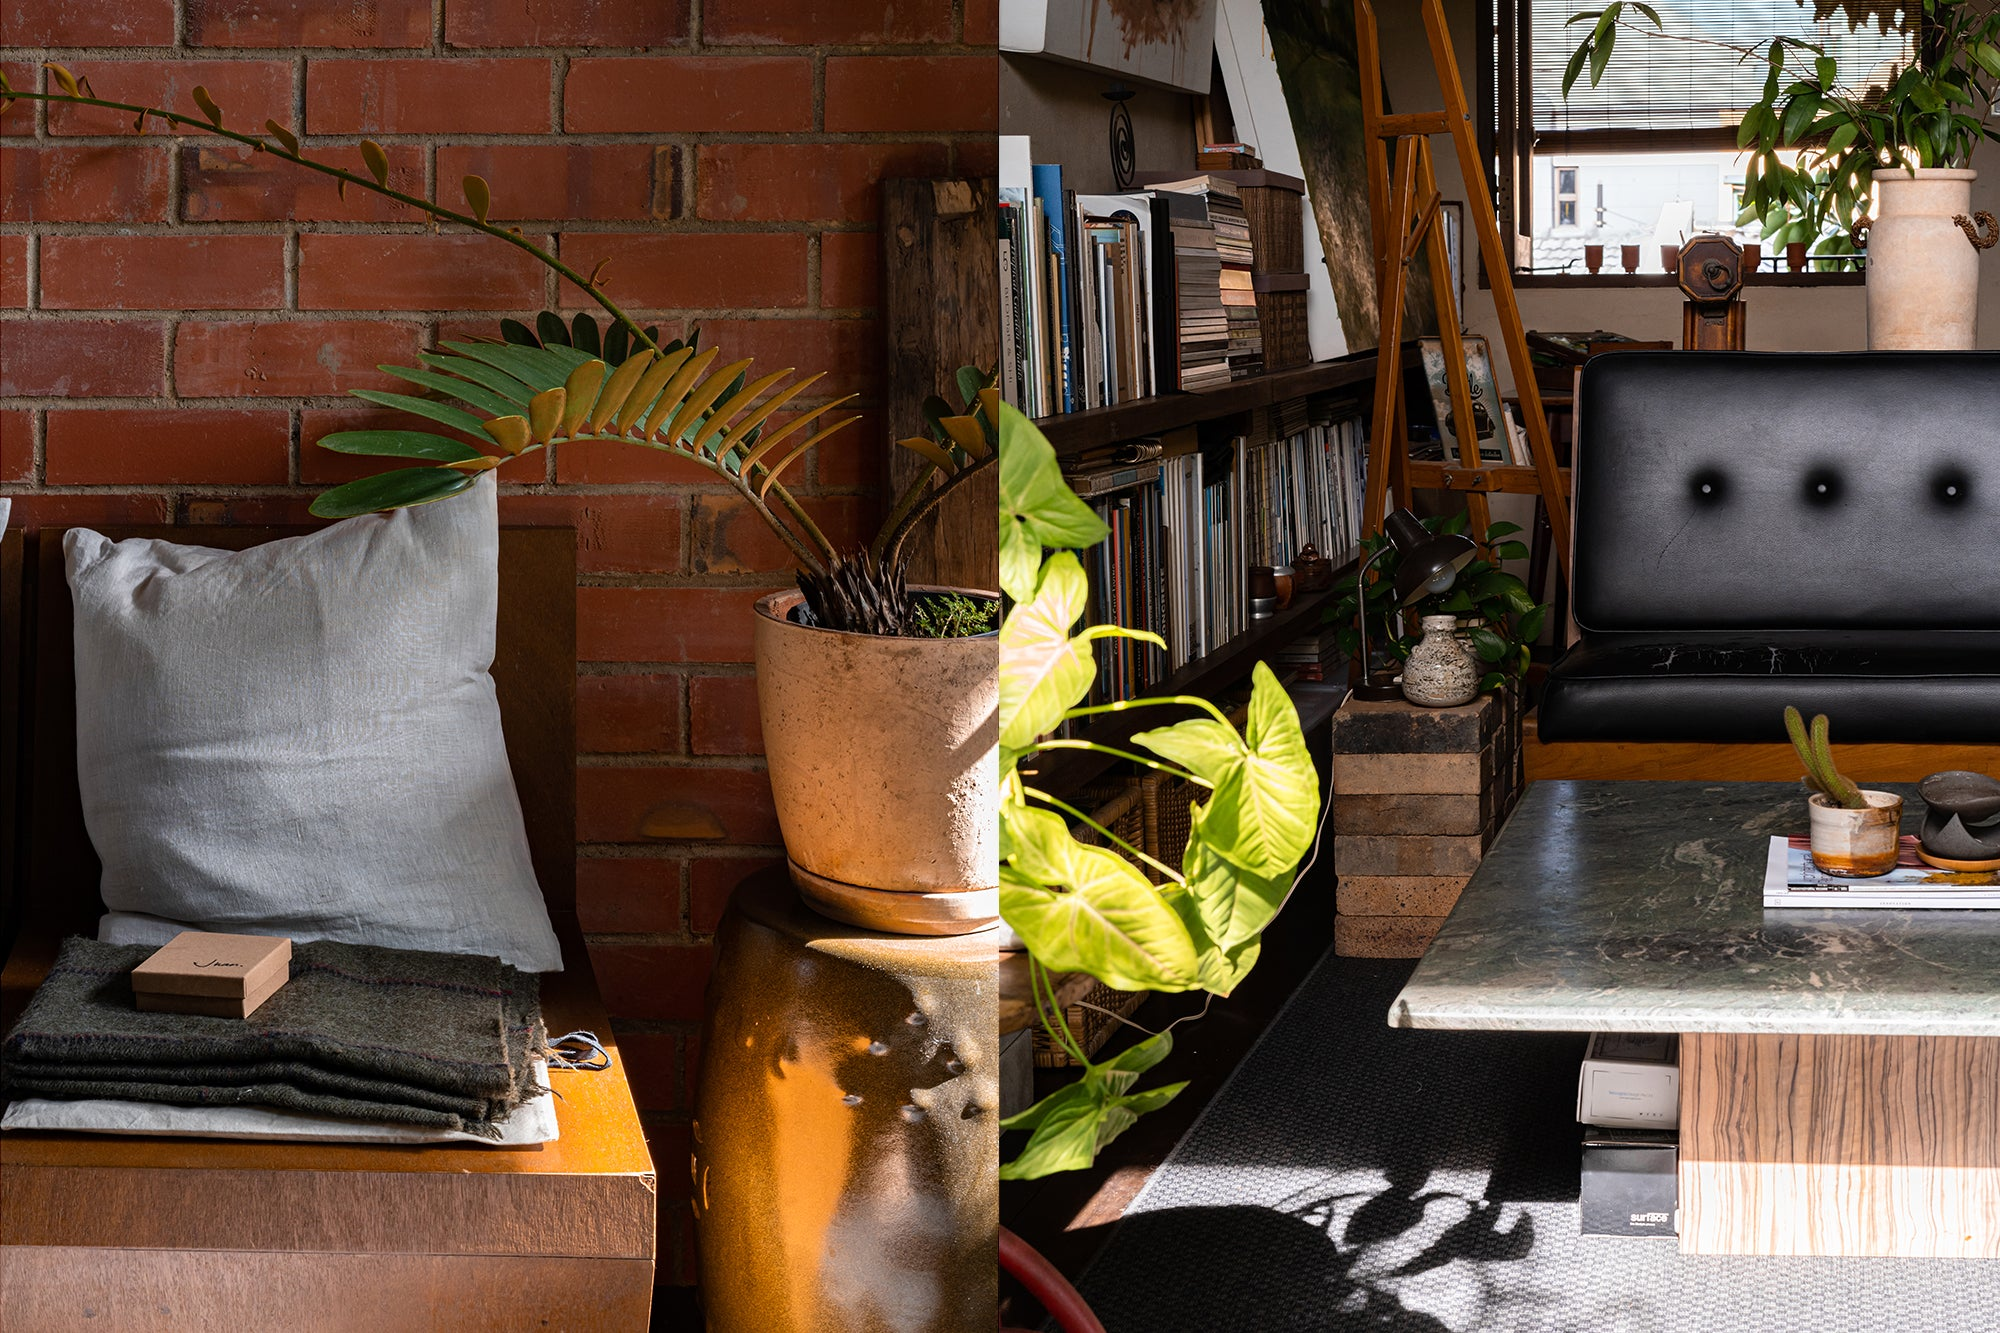 secondhand vintage chair and items with house plants